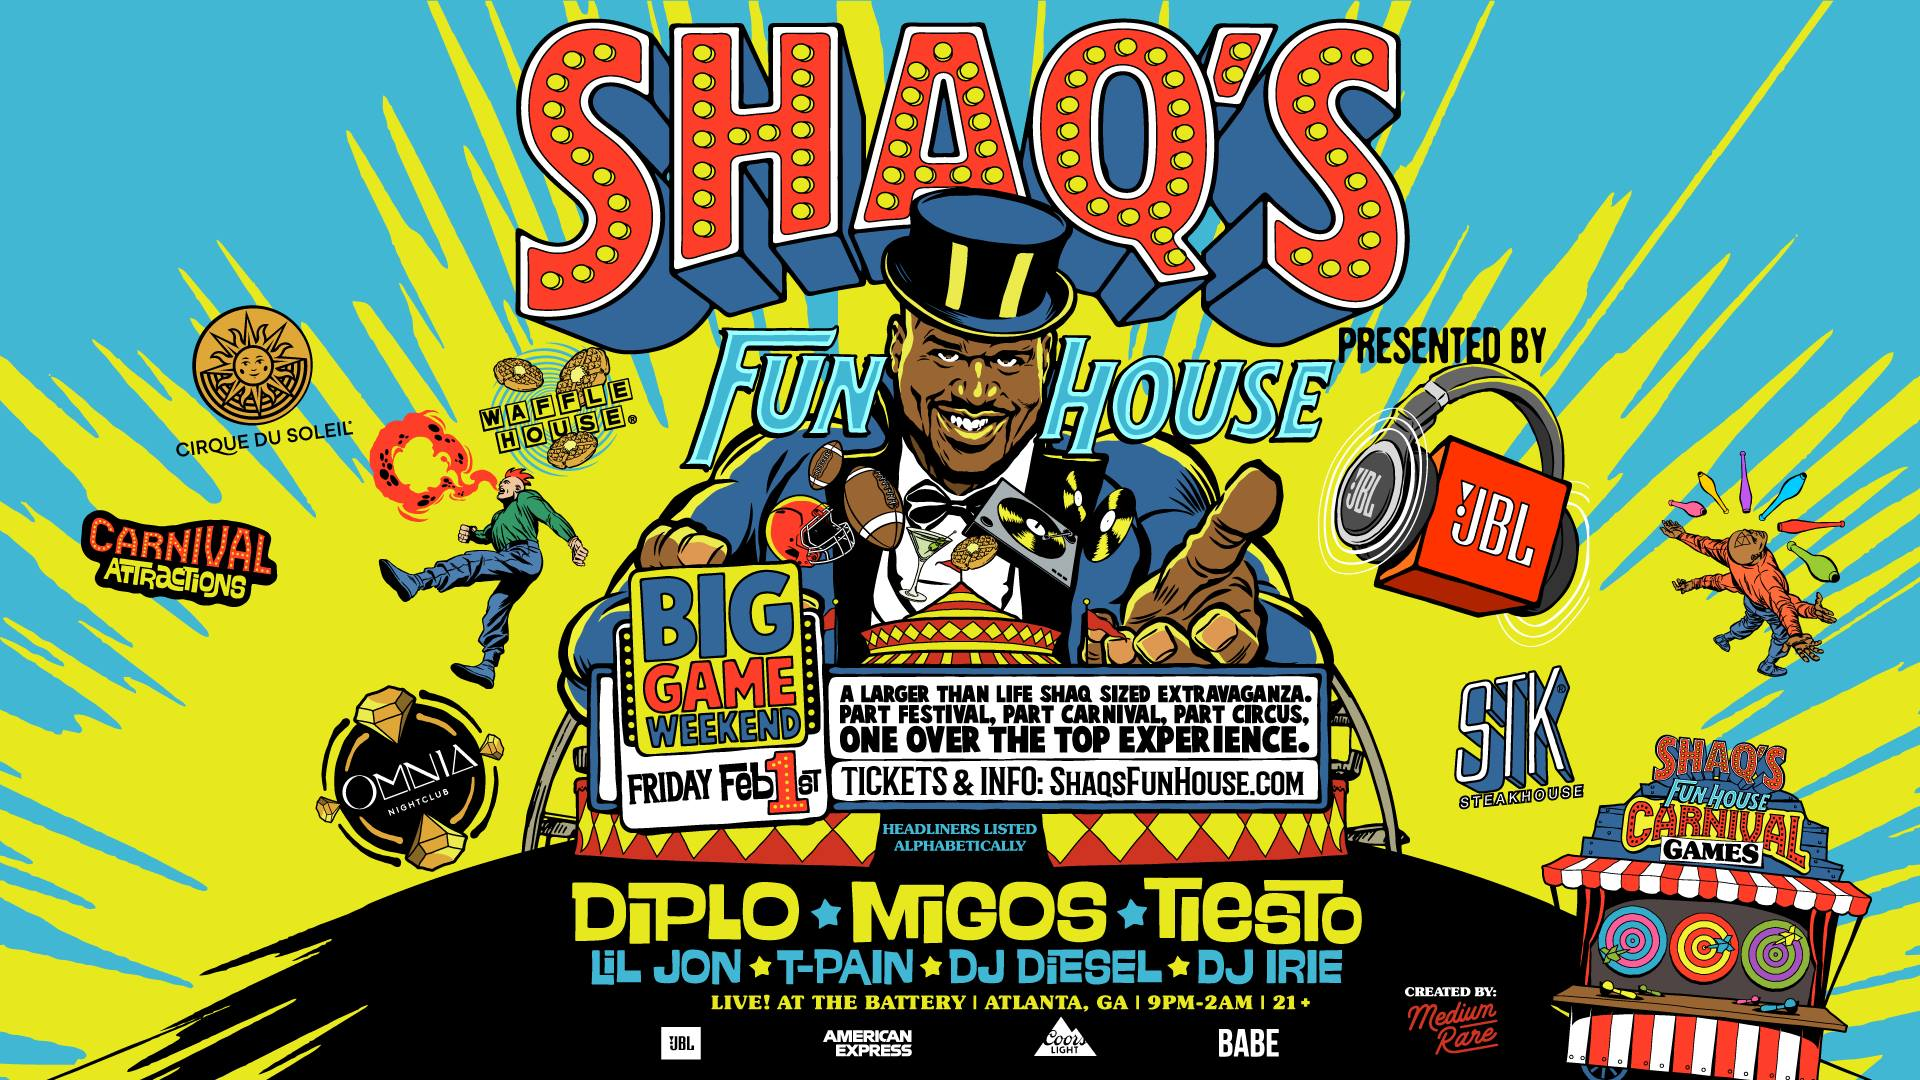 FRIDAY, FEBRUARY 1ST, 2019 | THE BATTERY SHAQ'S FUN HOUSE WITH DIPLO, MIGOS, TIESTO AND MORE!